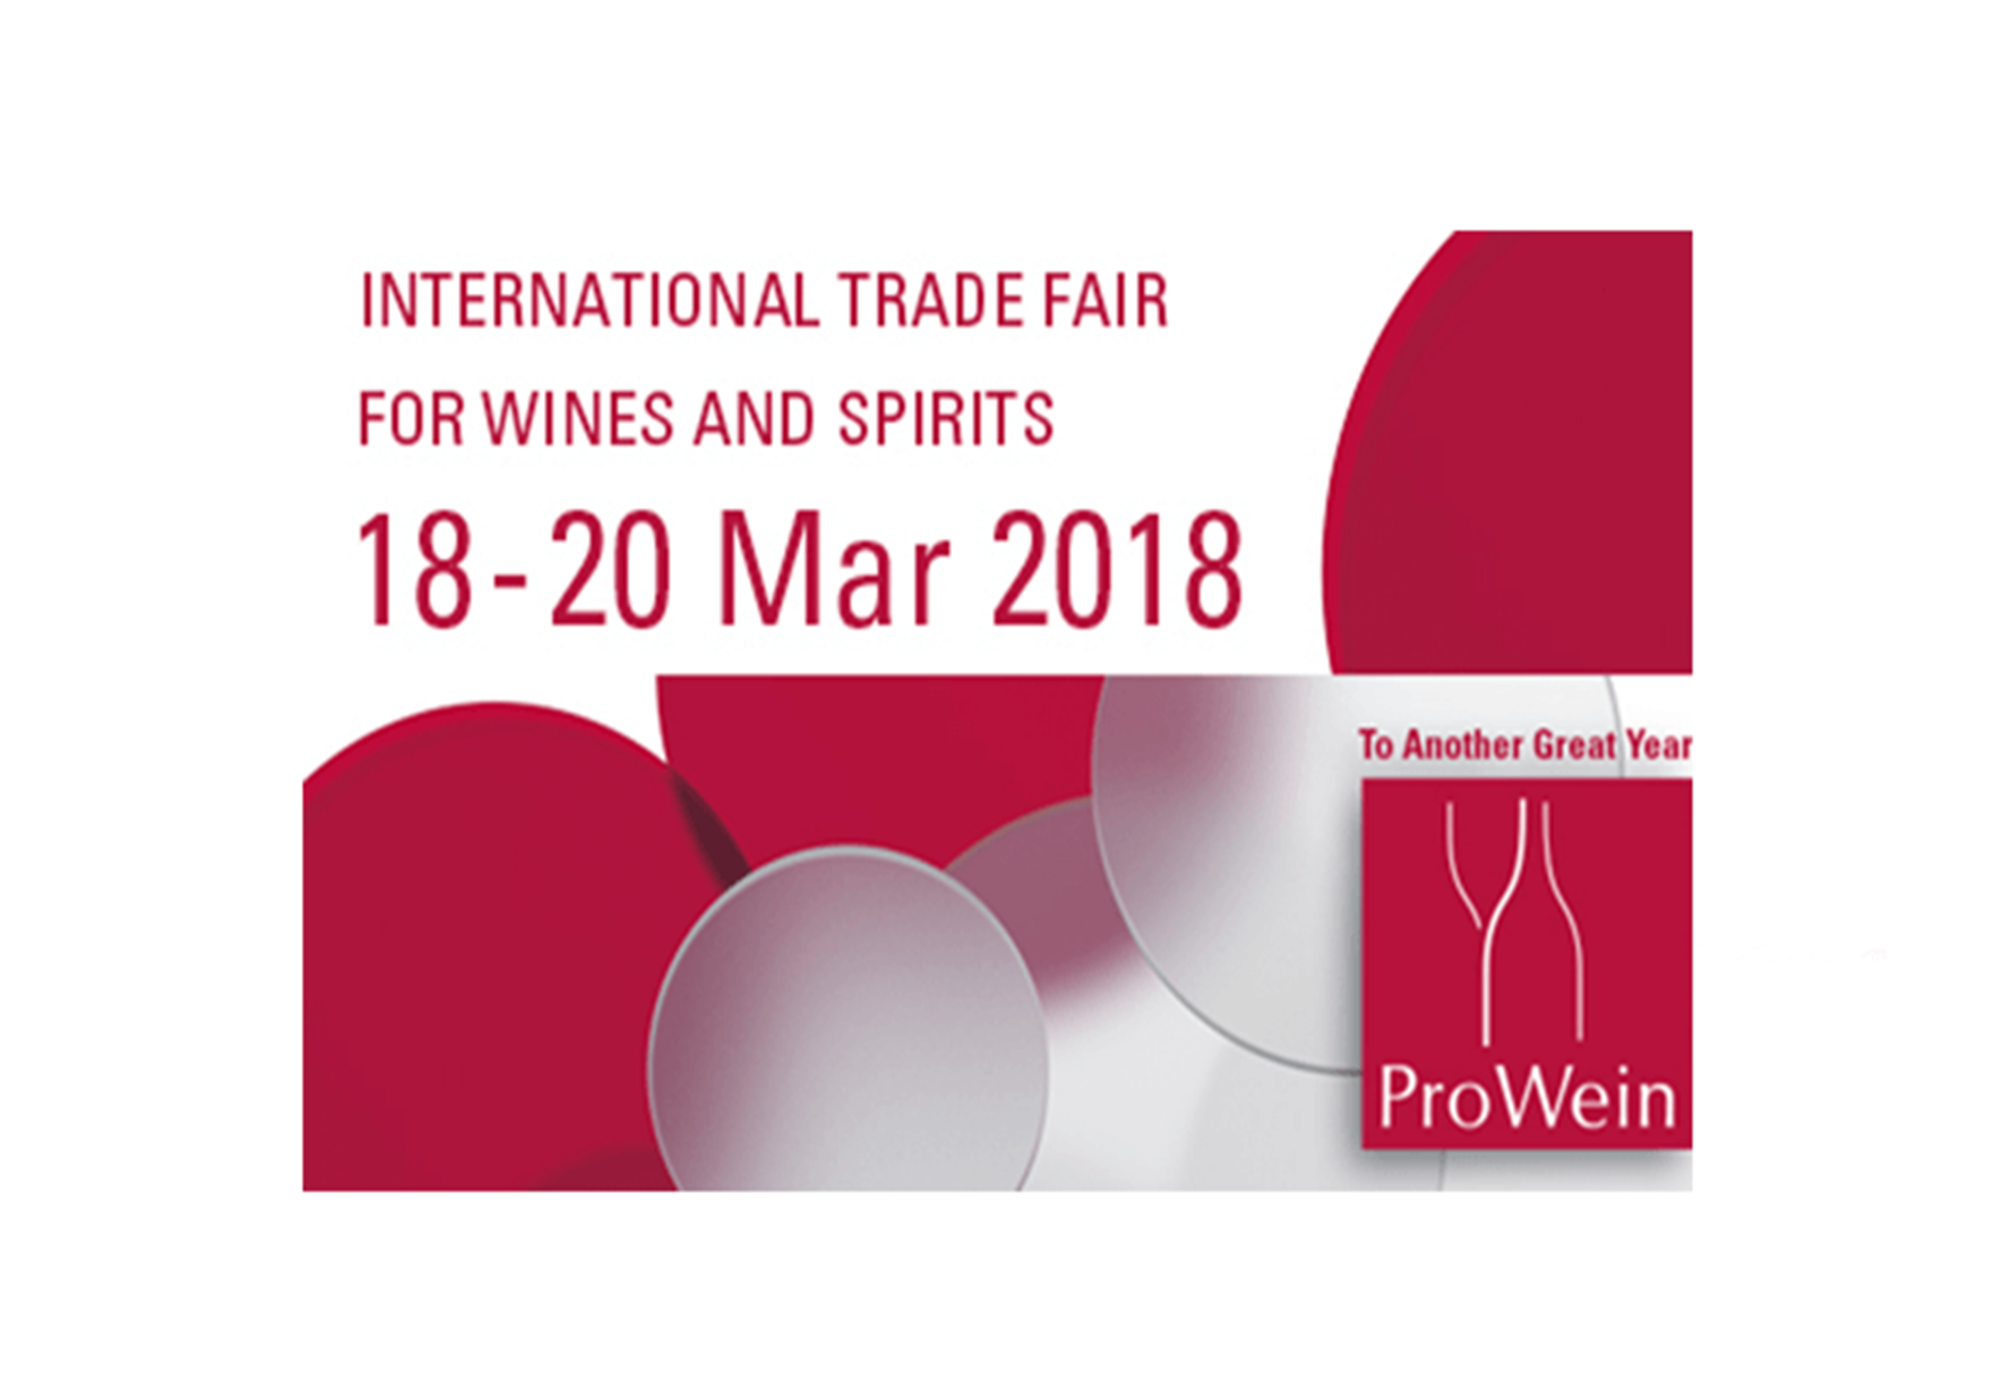 From 18 to 20 March 2018, ProWein Düsseldor